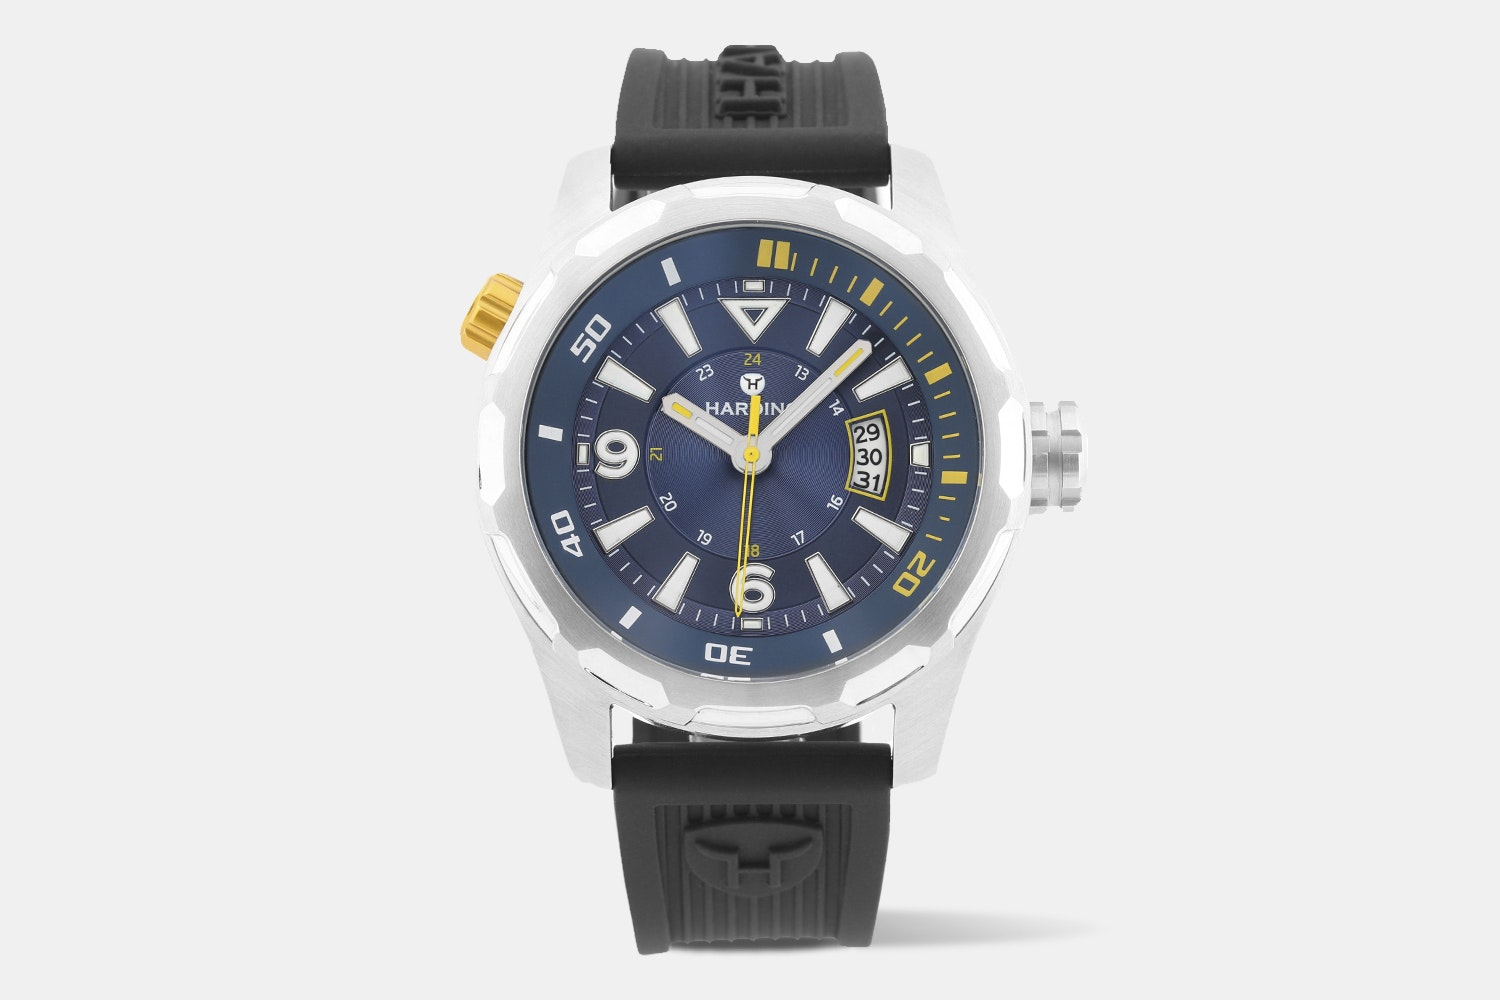 Harding Aquapro Diver Quartz Watch